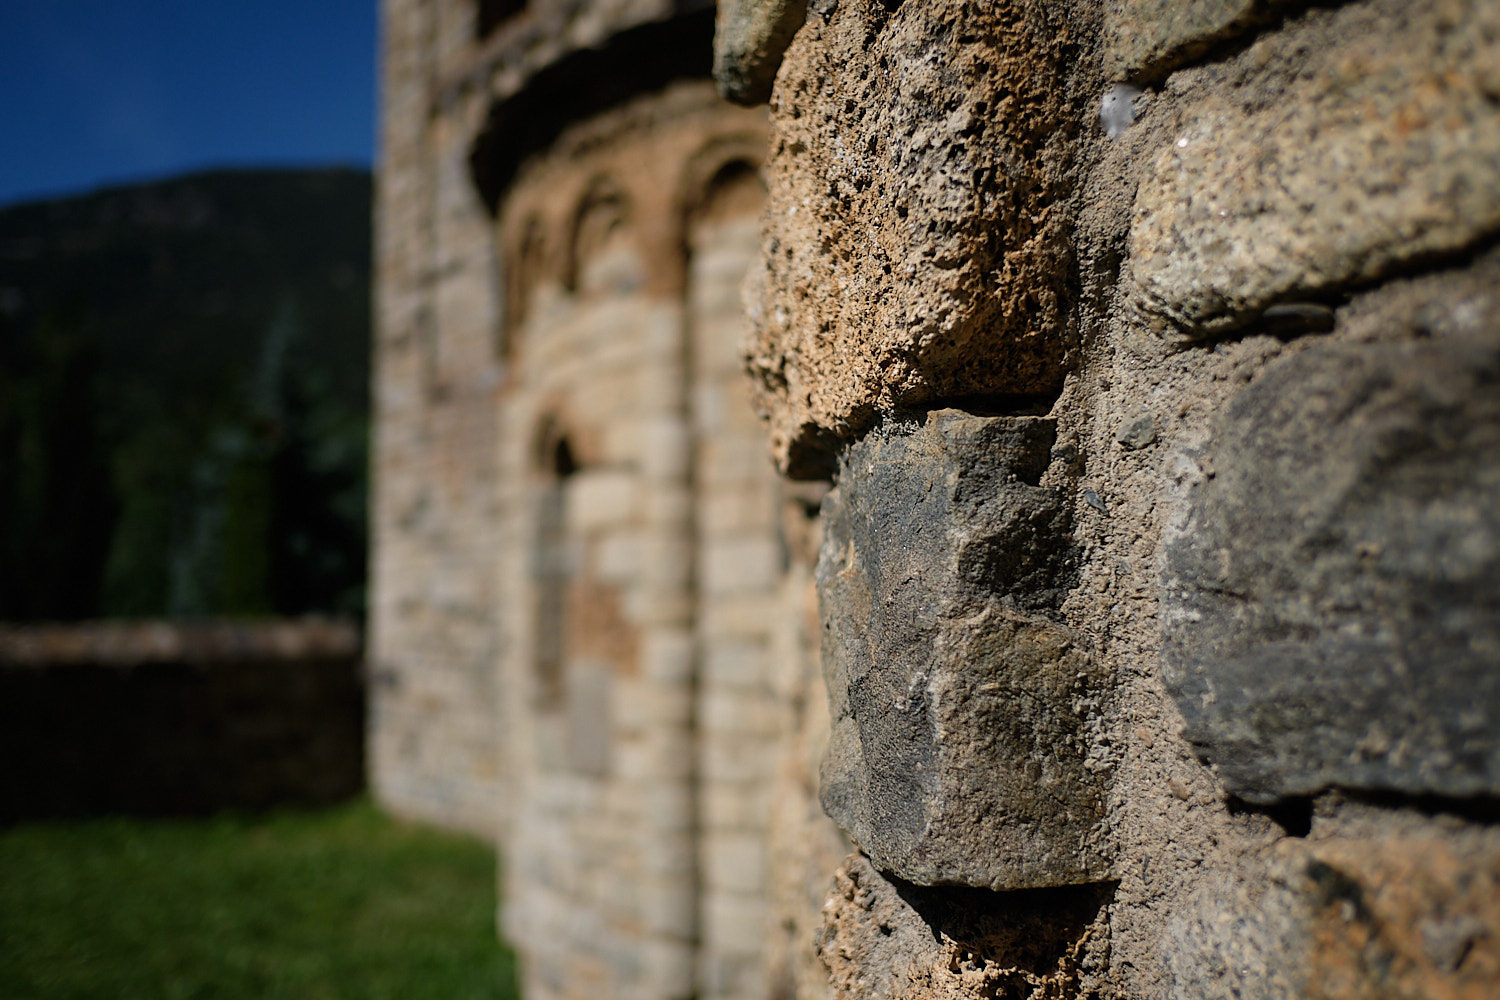 Day view with unfocused background of the romanesque church of Taüll, Vall de Boí, Pyrenees, Spain